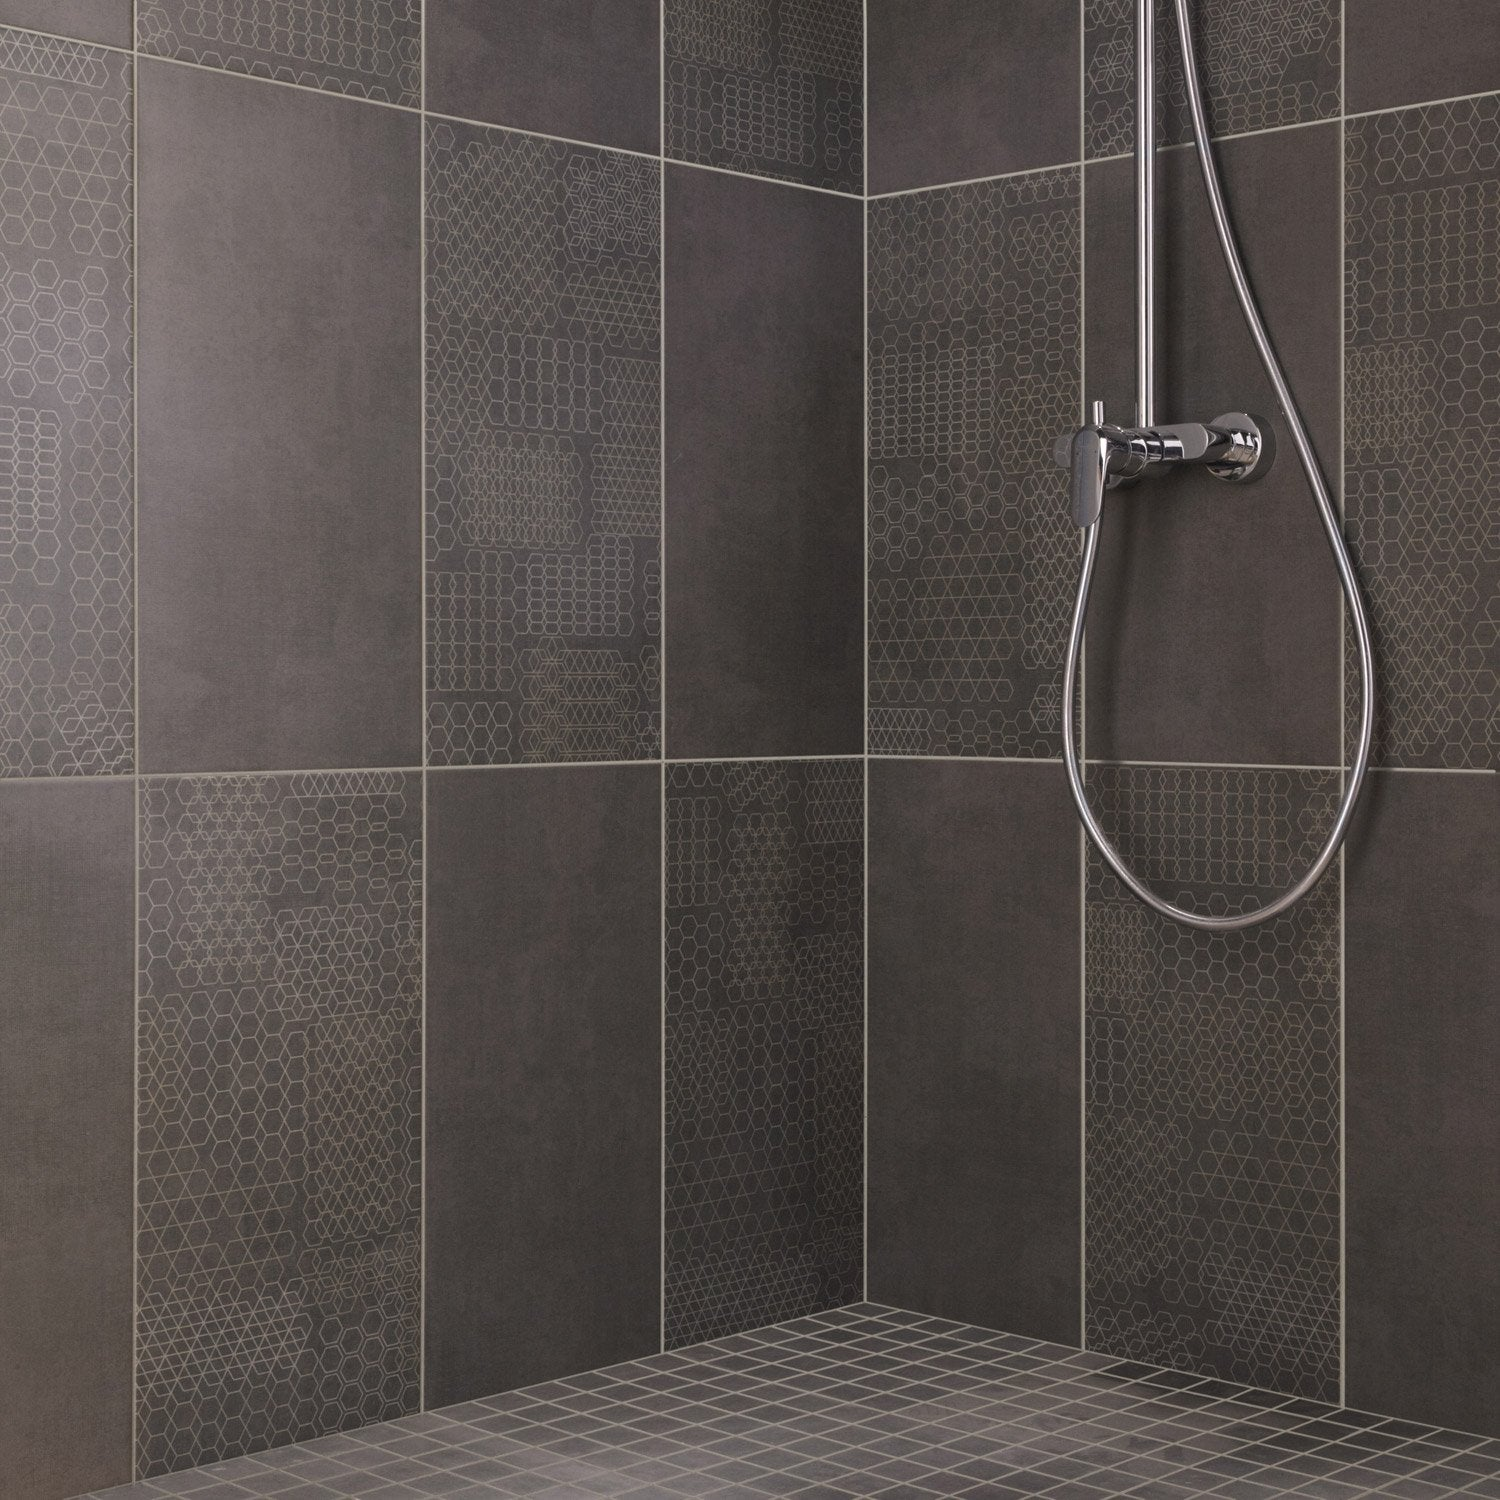 Fa ence mur anthracite tweed x cm leroy merlin for Salle de bain carrelage vertical